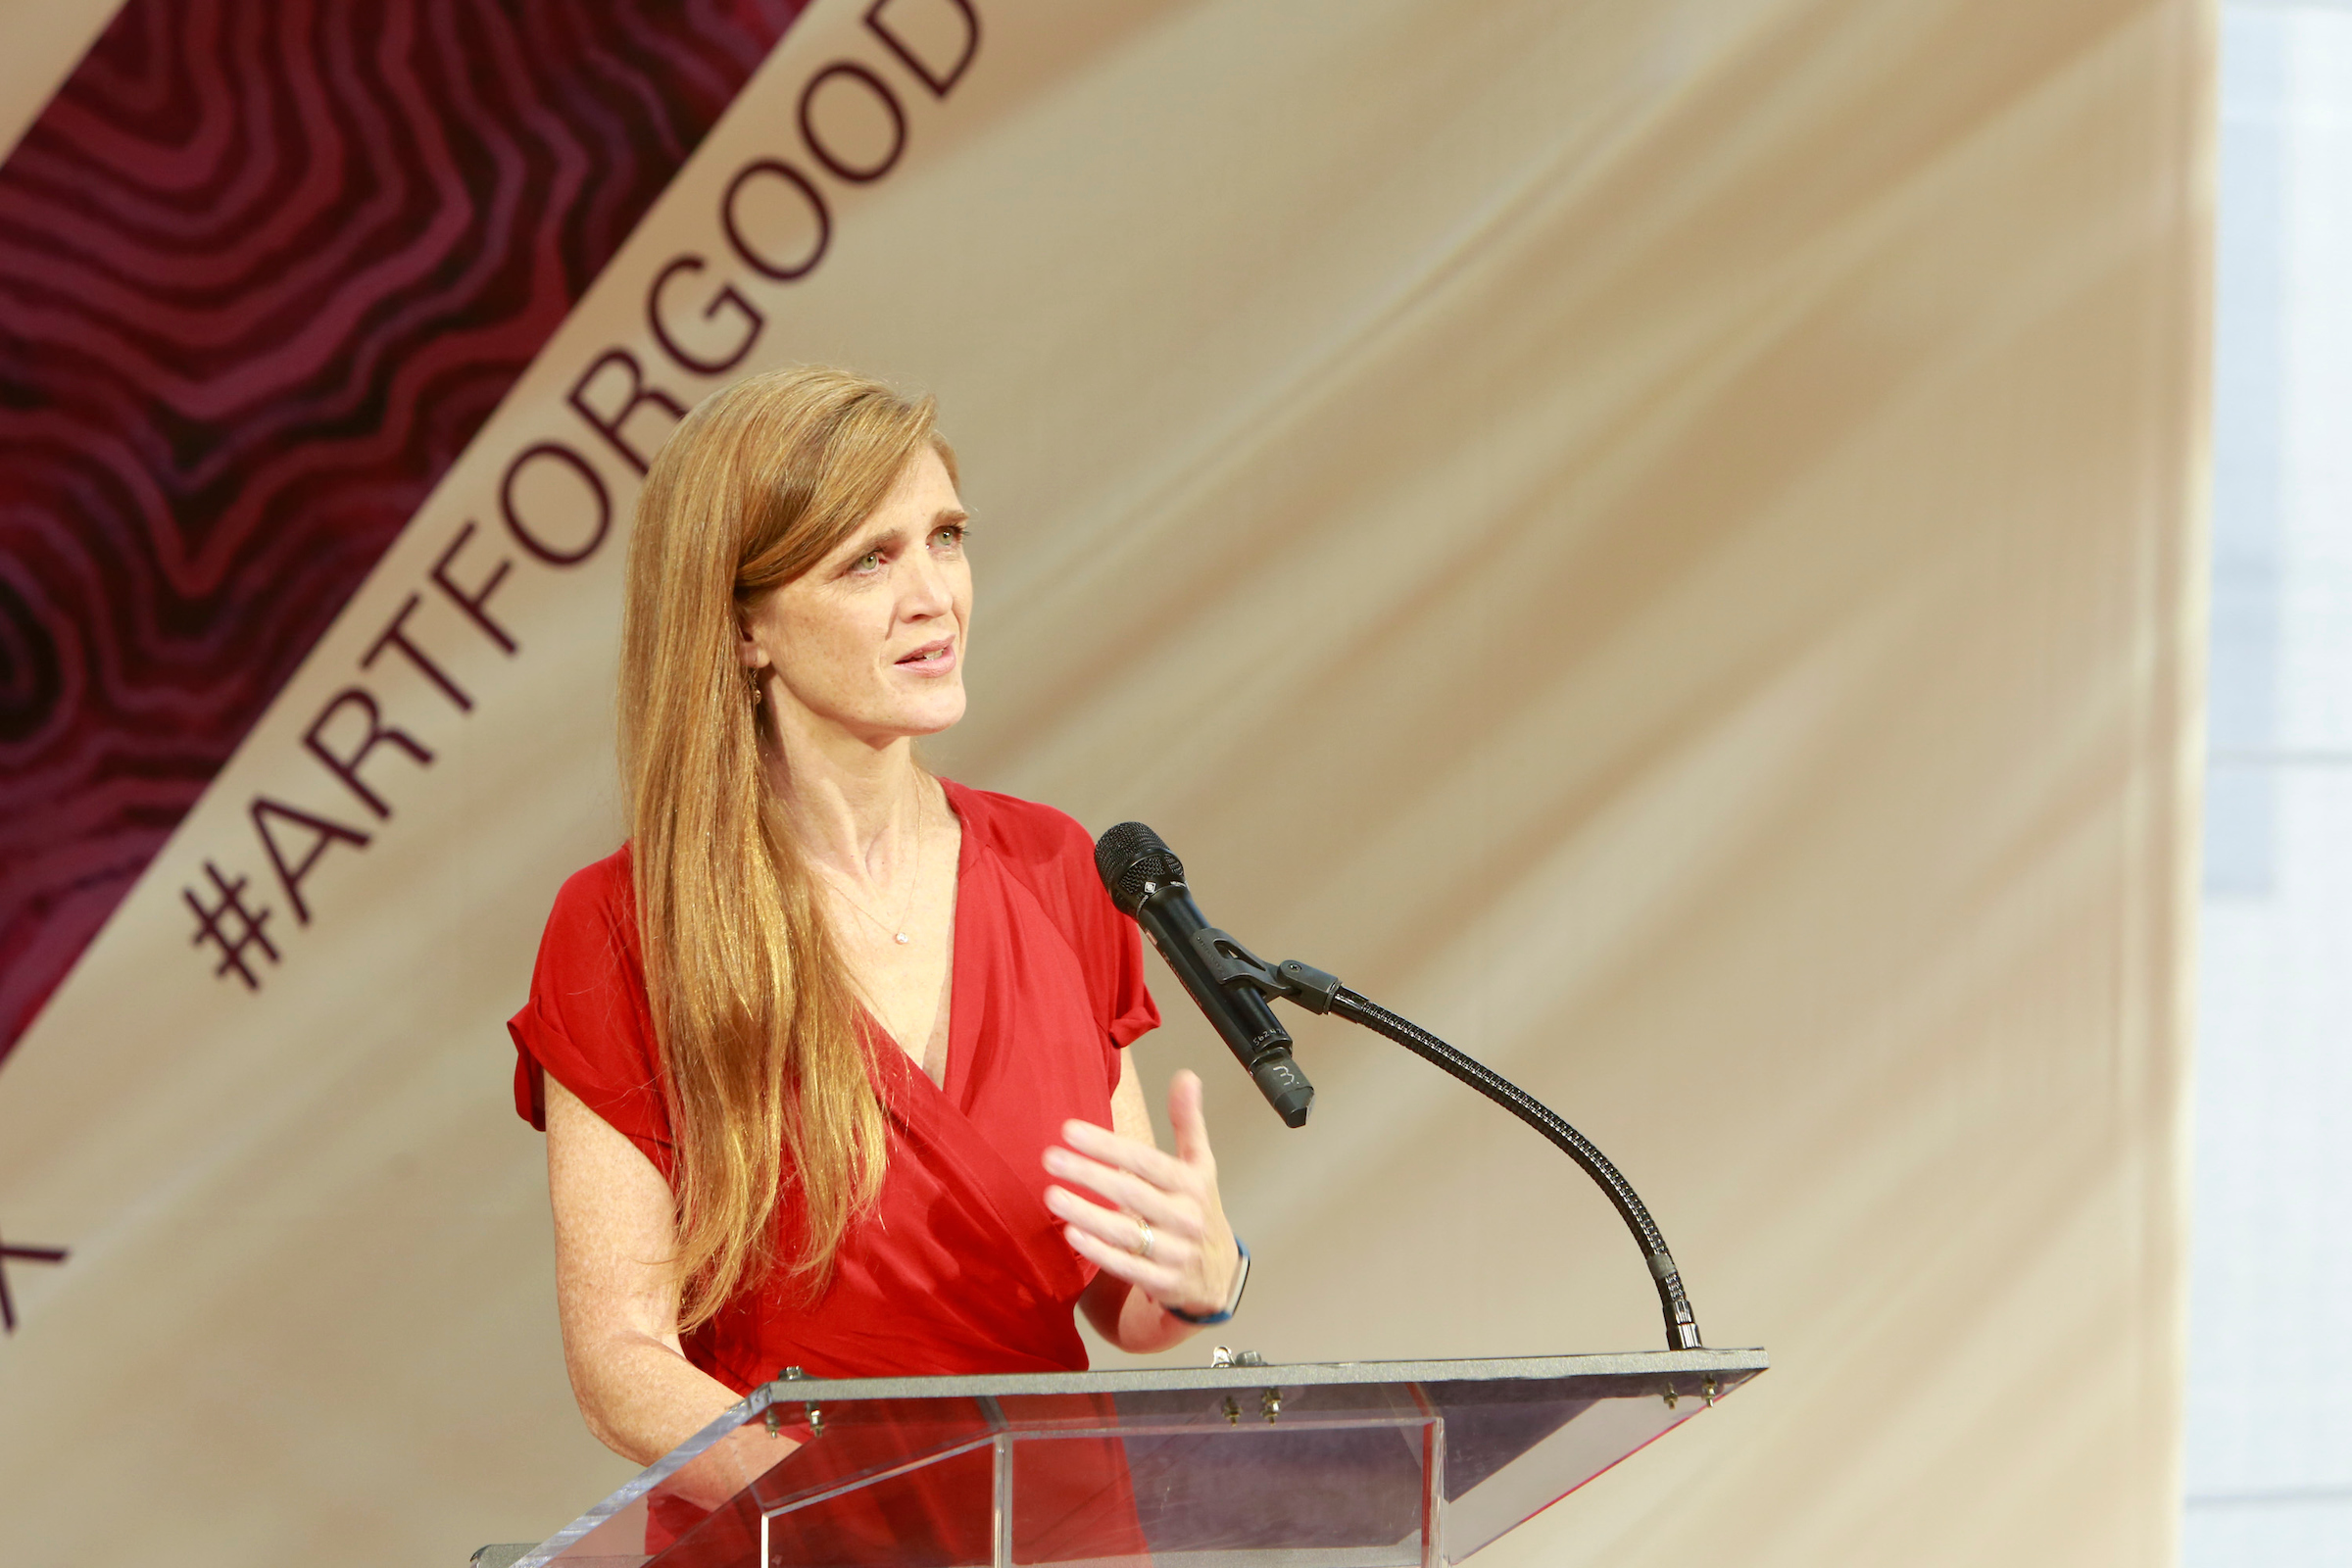 U.S Permanent Representative to the United Nations, Samantha Power